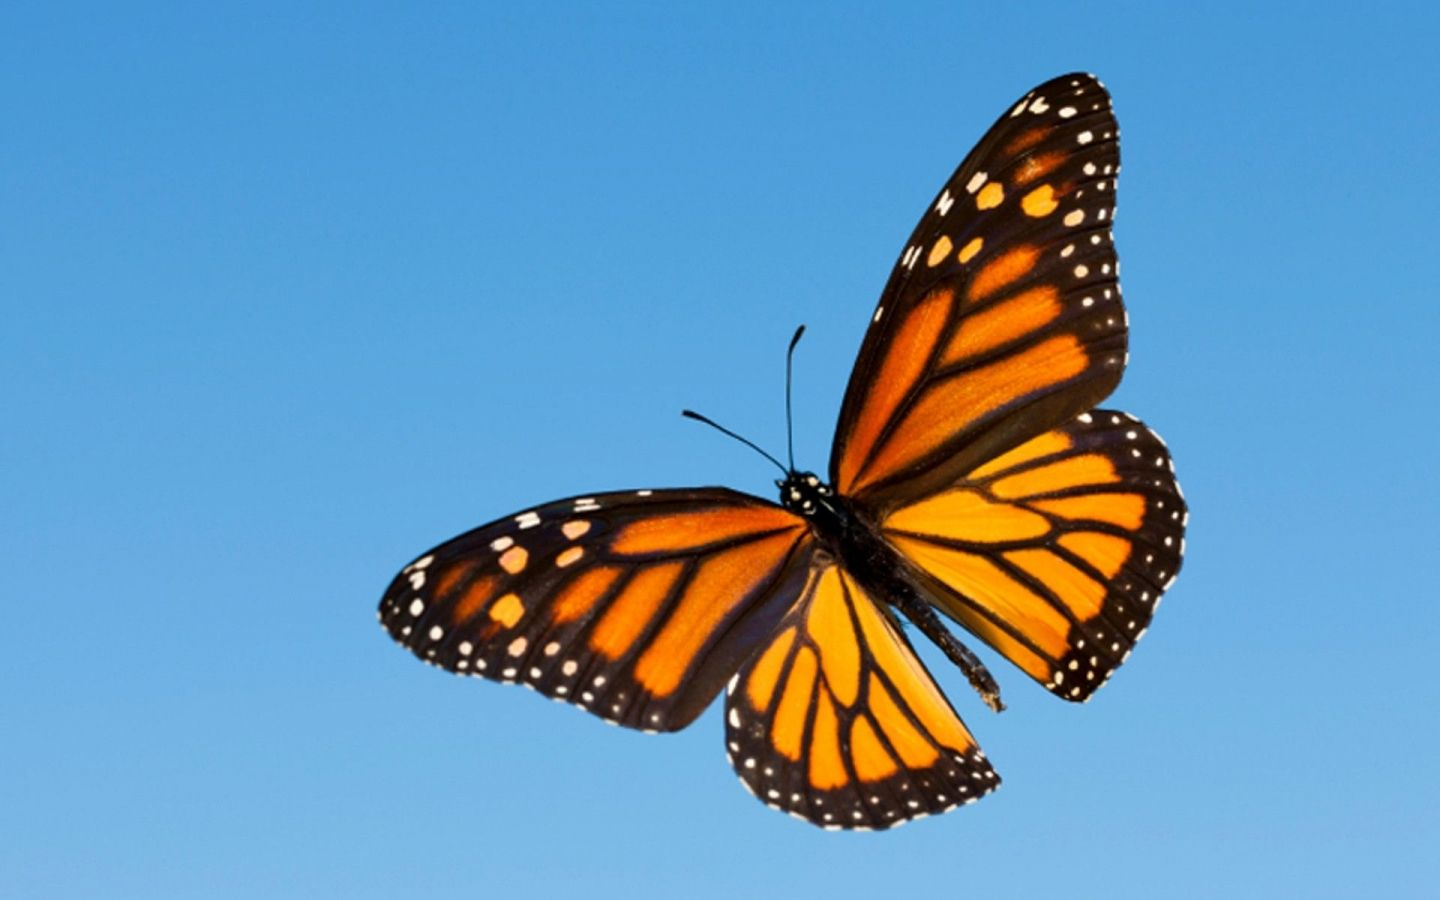 Monarch Butterfly Aesthetic Wallpapers - Wallpaper Cave